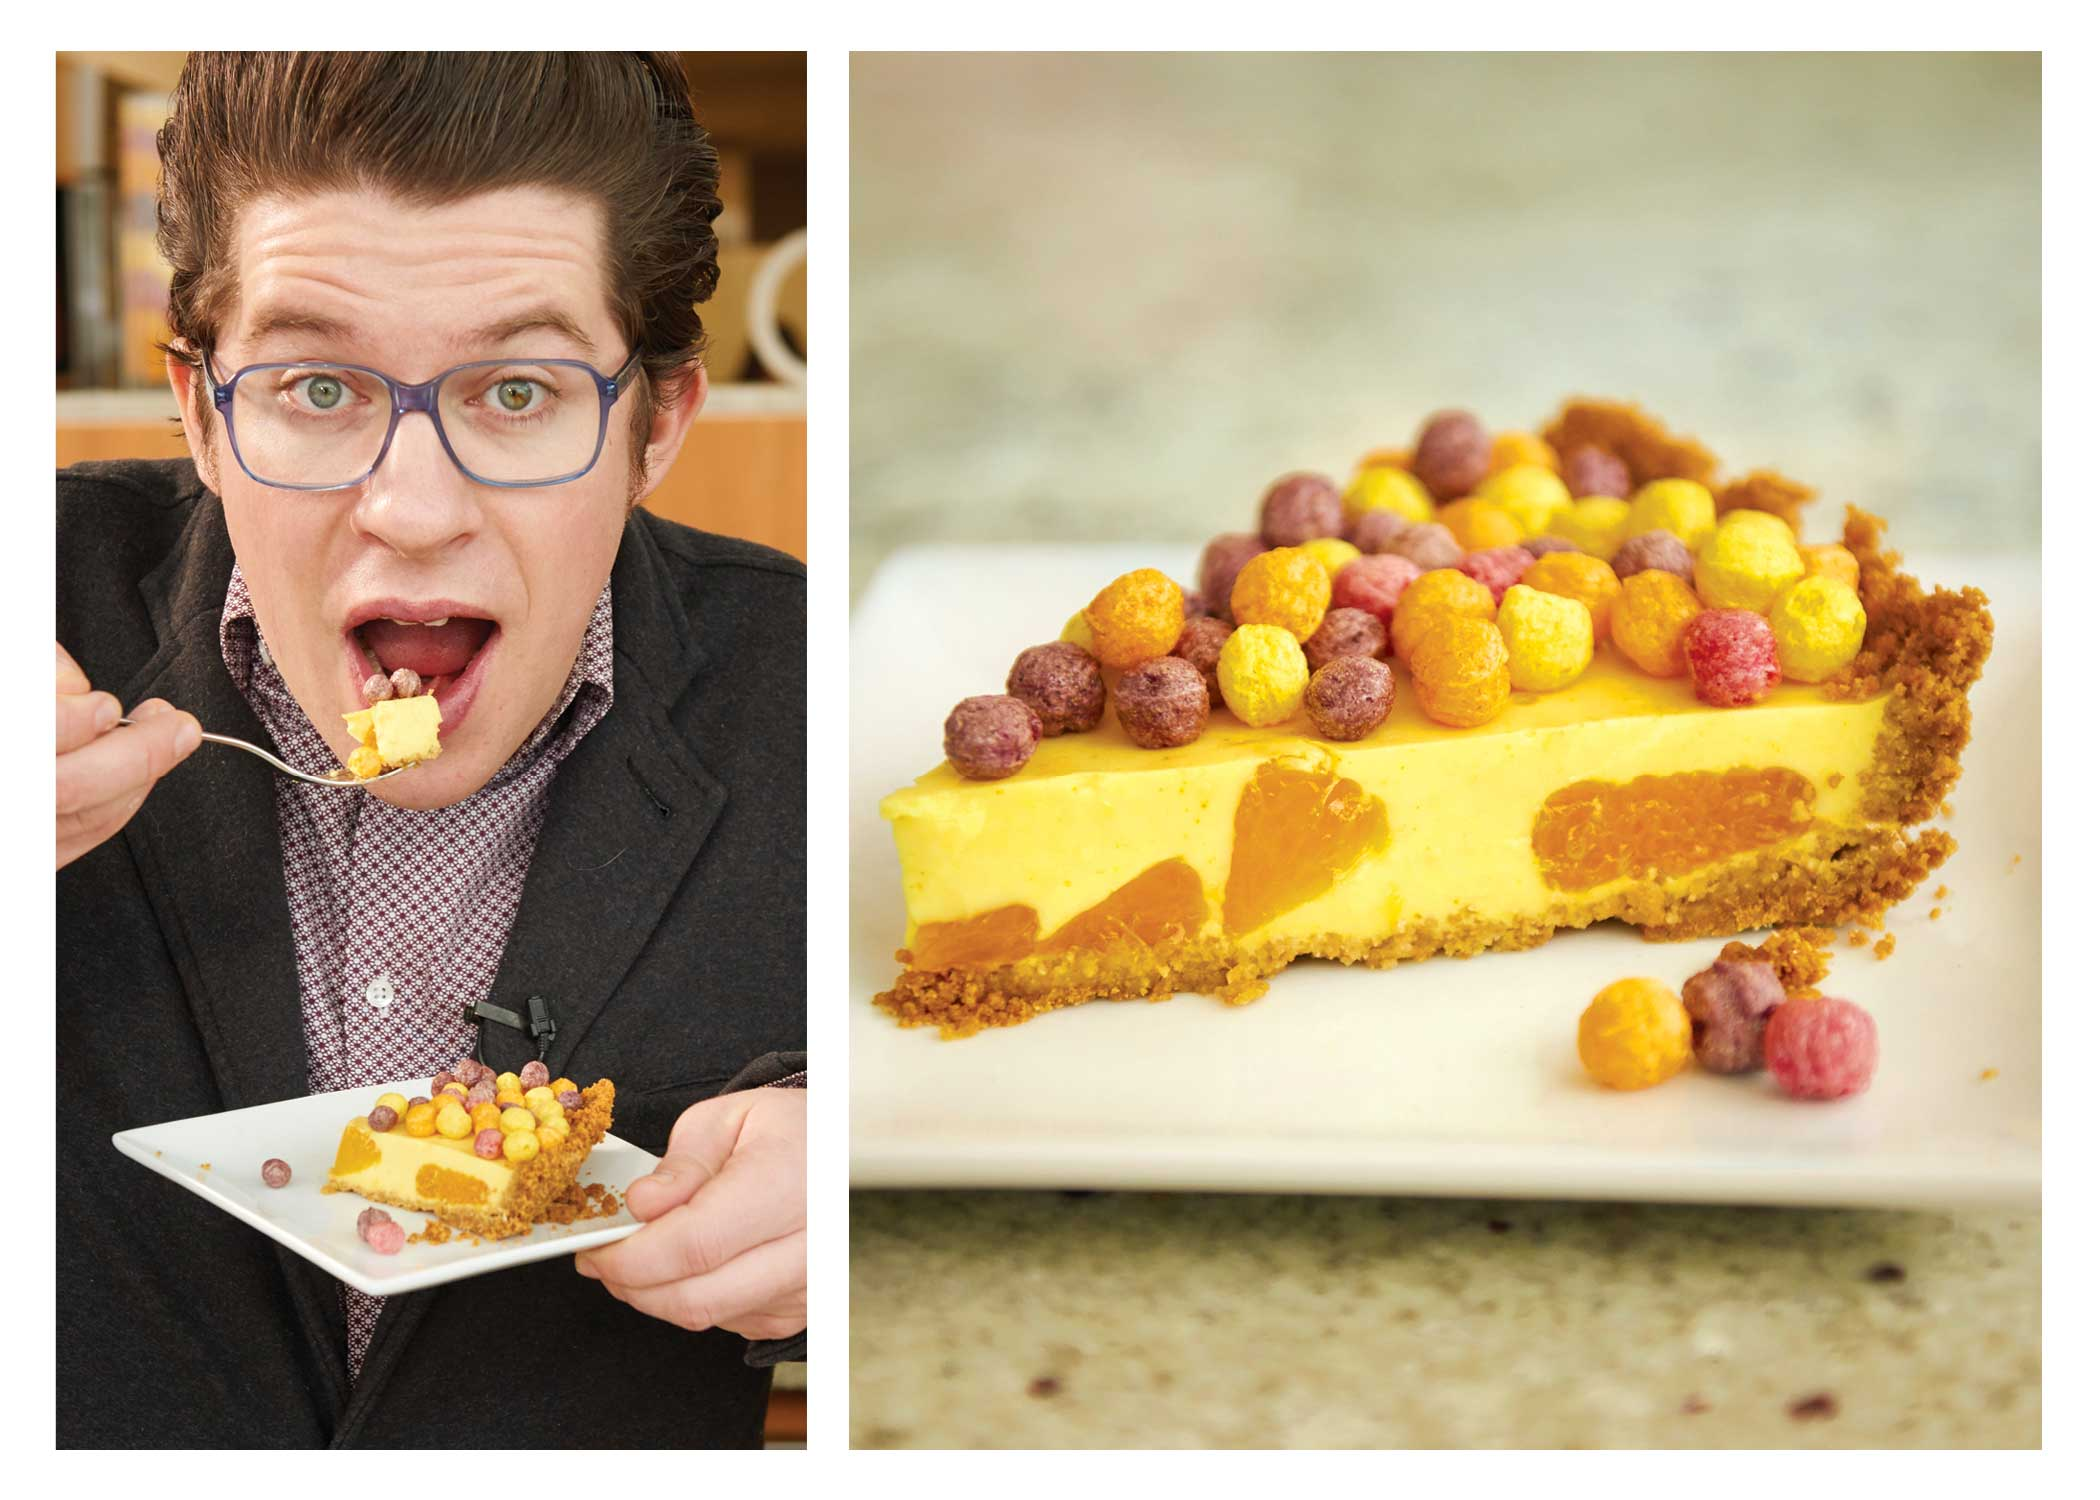 Chef Warner's Trix Sunrise Chill Pie can be enjoyed as breakfast, brunch or dessert!